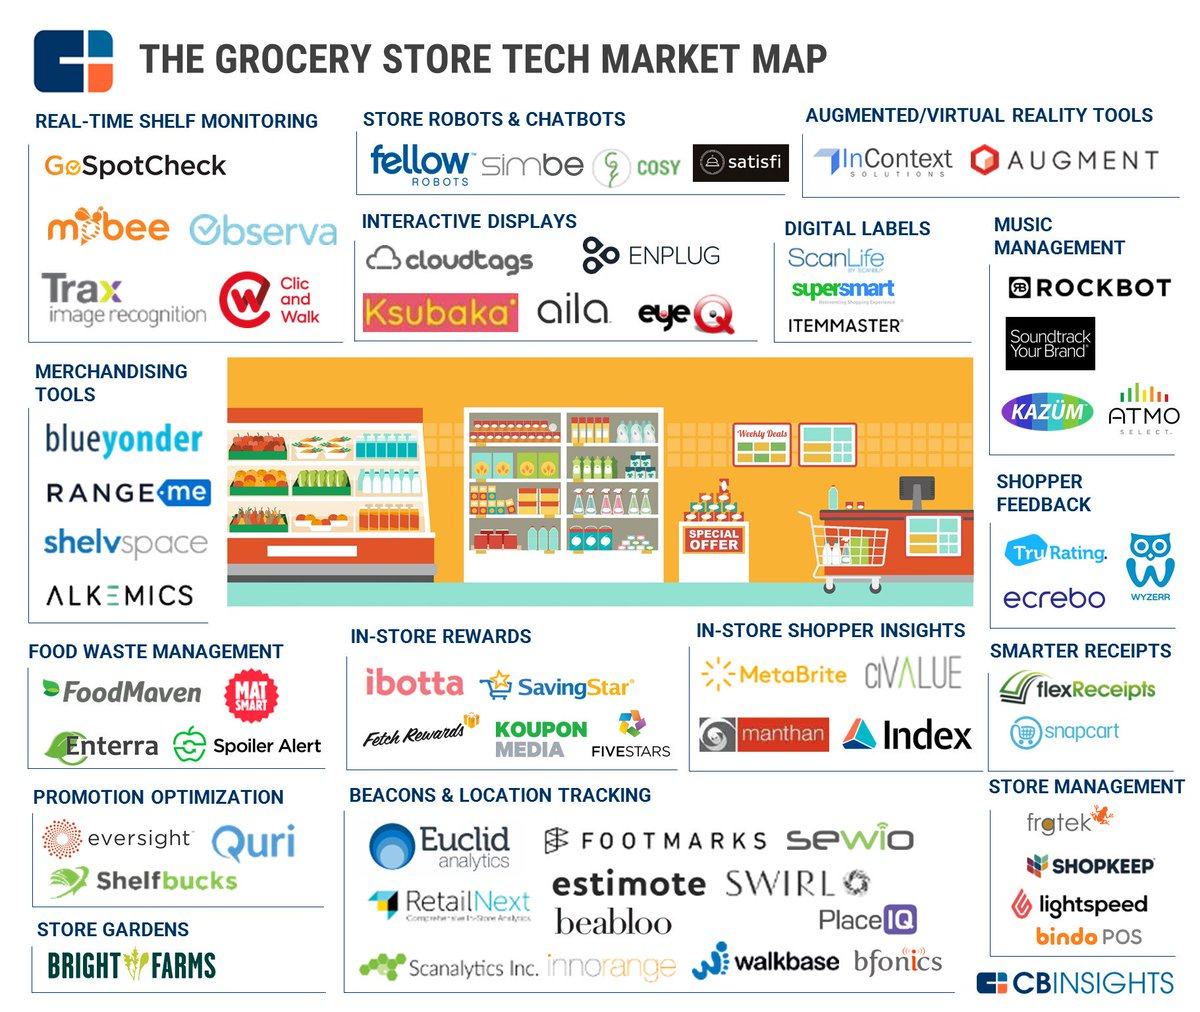 CB Insights On Twitter Morning Market Map The Grocery Store Of - Map of grocery stores in us